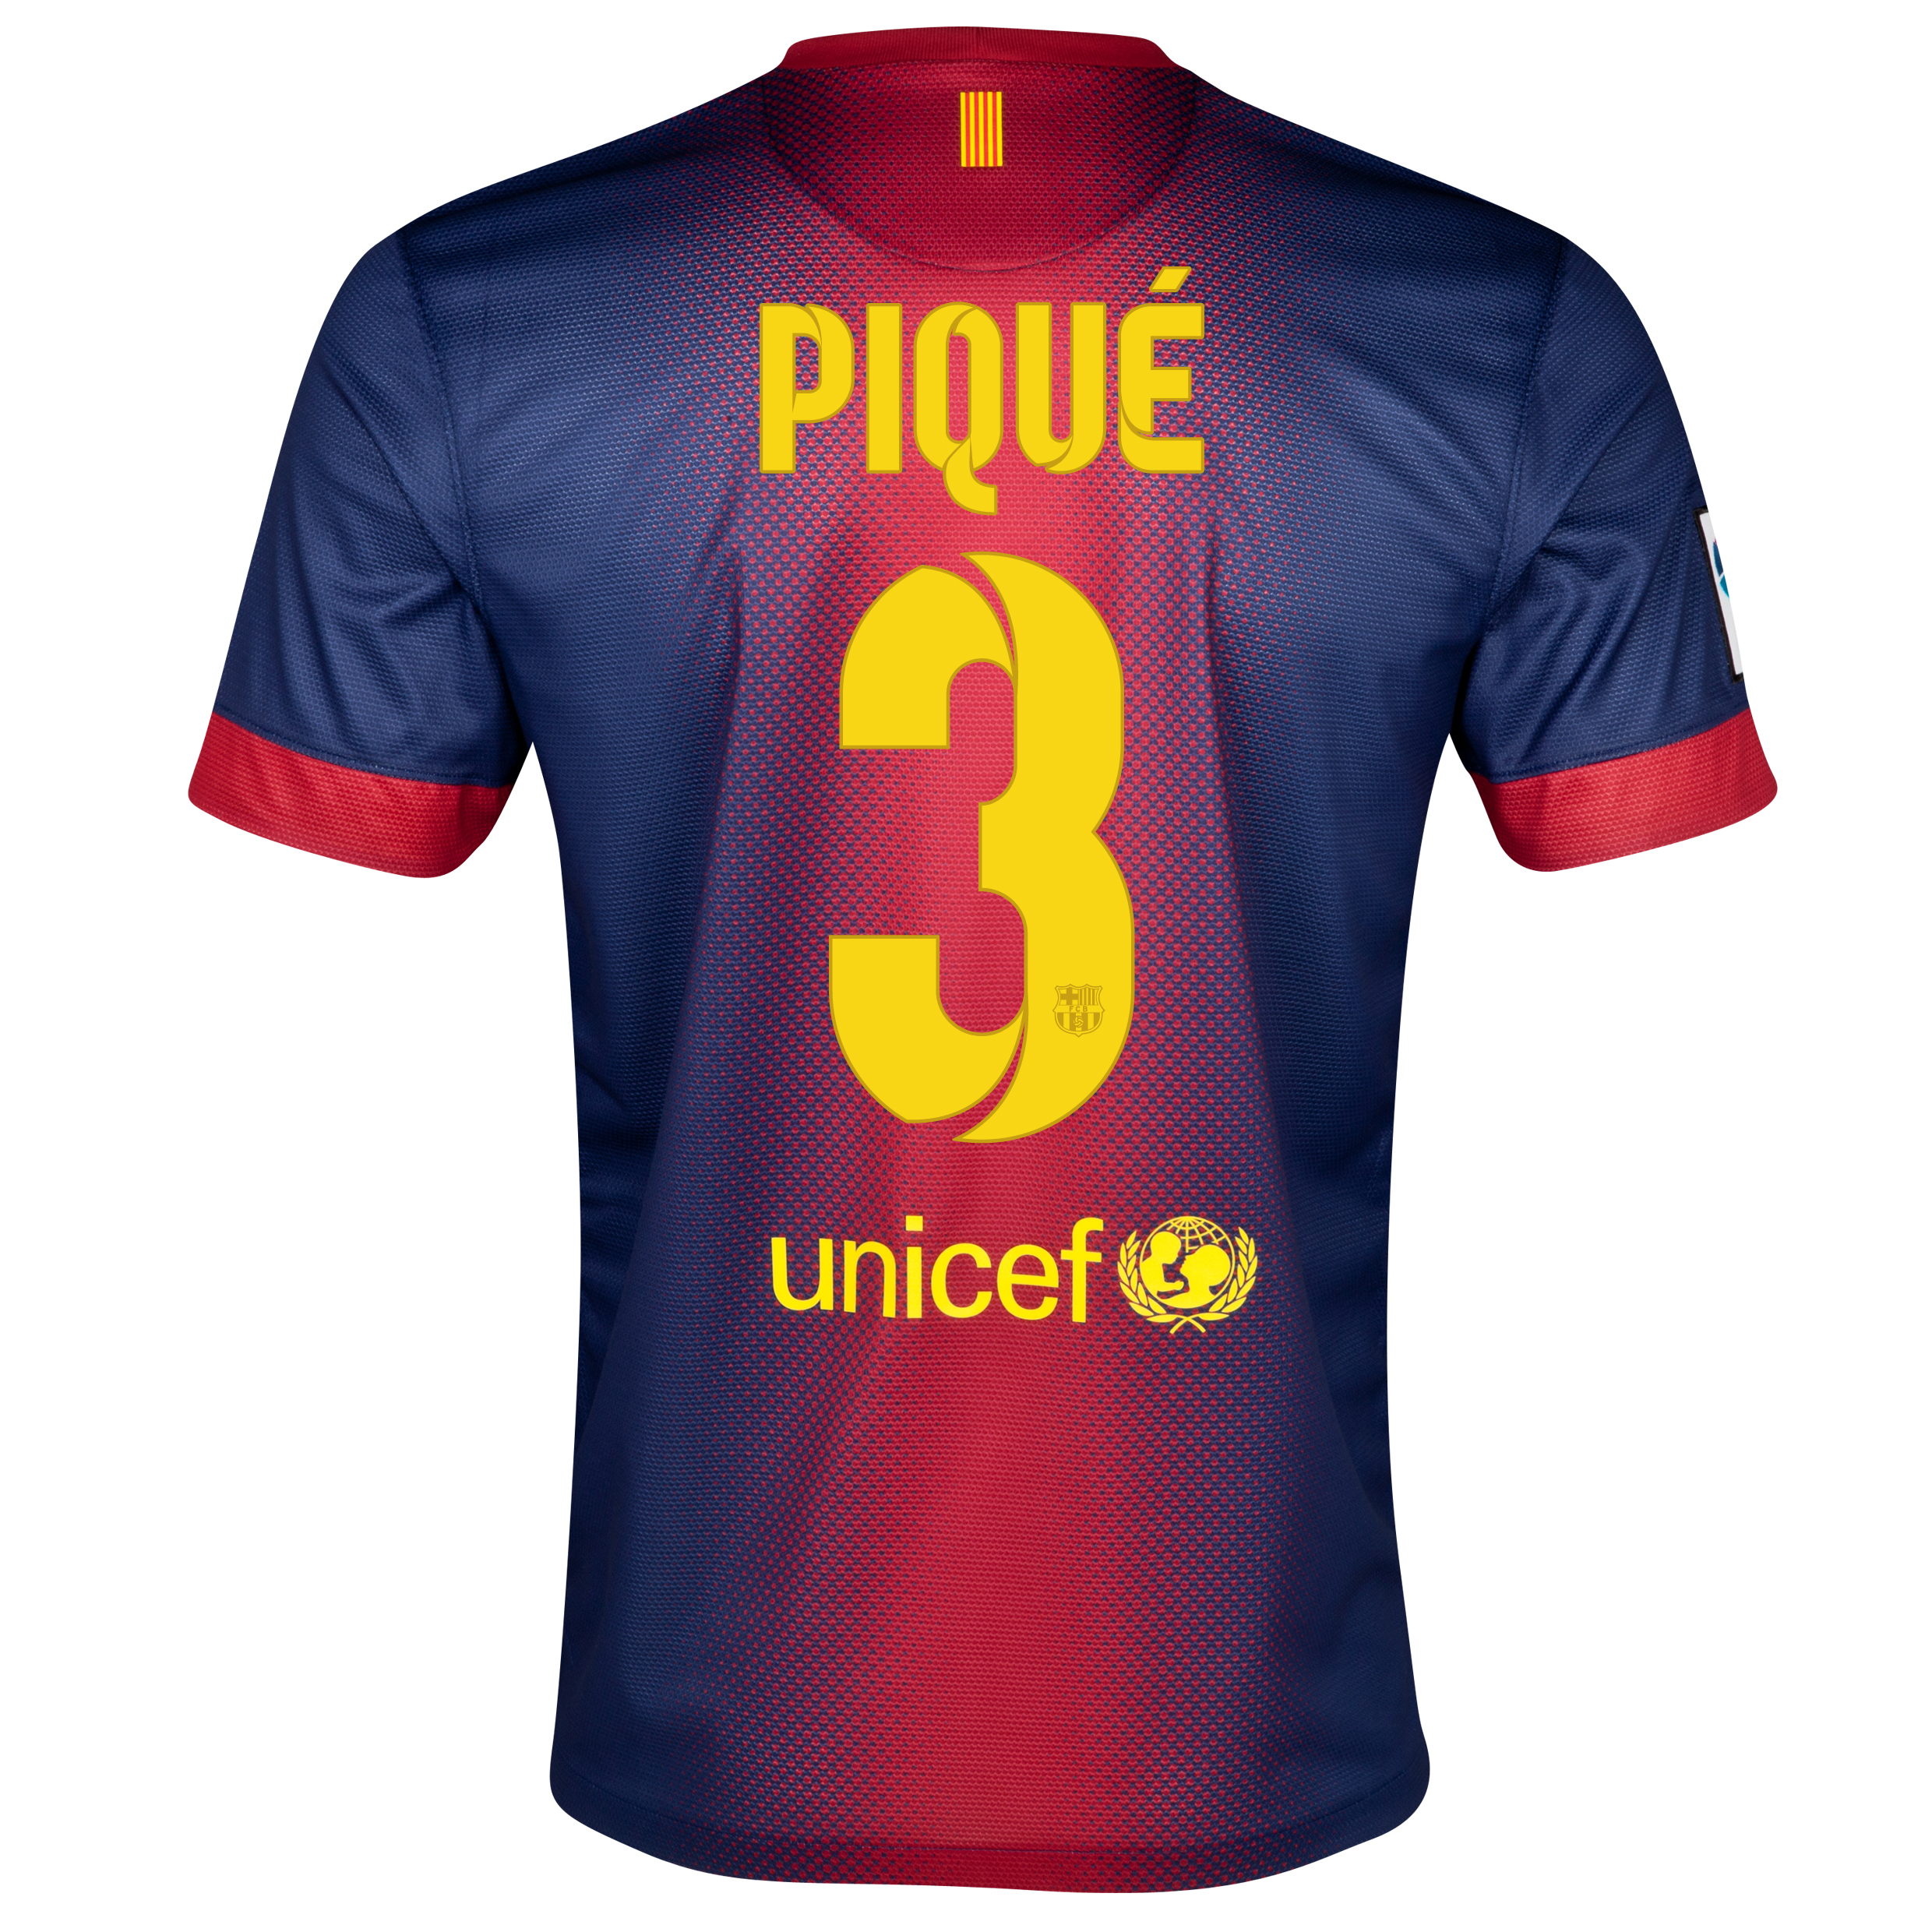 Barcelona Home Shirt 2012/13 - Youths with Pique 3 printing